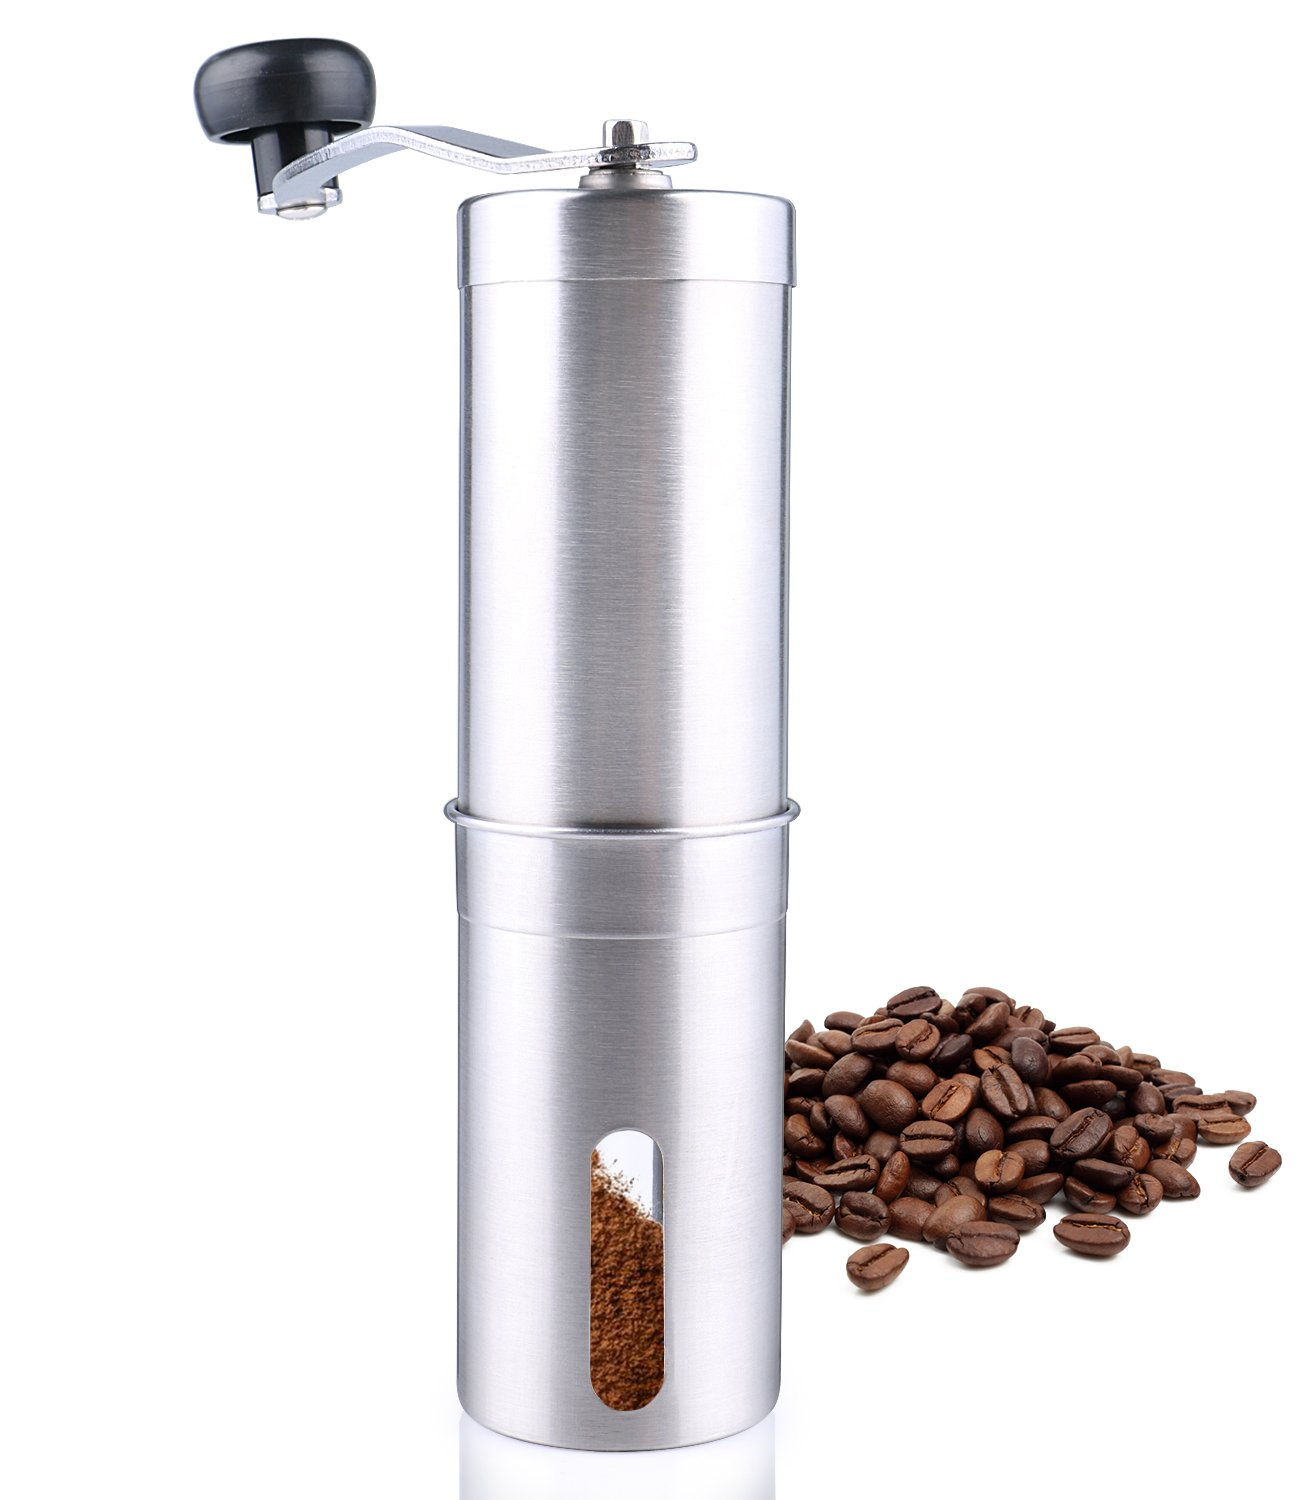 SYDLIFE Manual Coffee Grinder Stainless Steel Coffee Maker with Ceramic Conical Burr Mill, Portable Adjustable Hand Coffee Machine